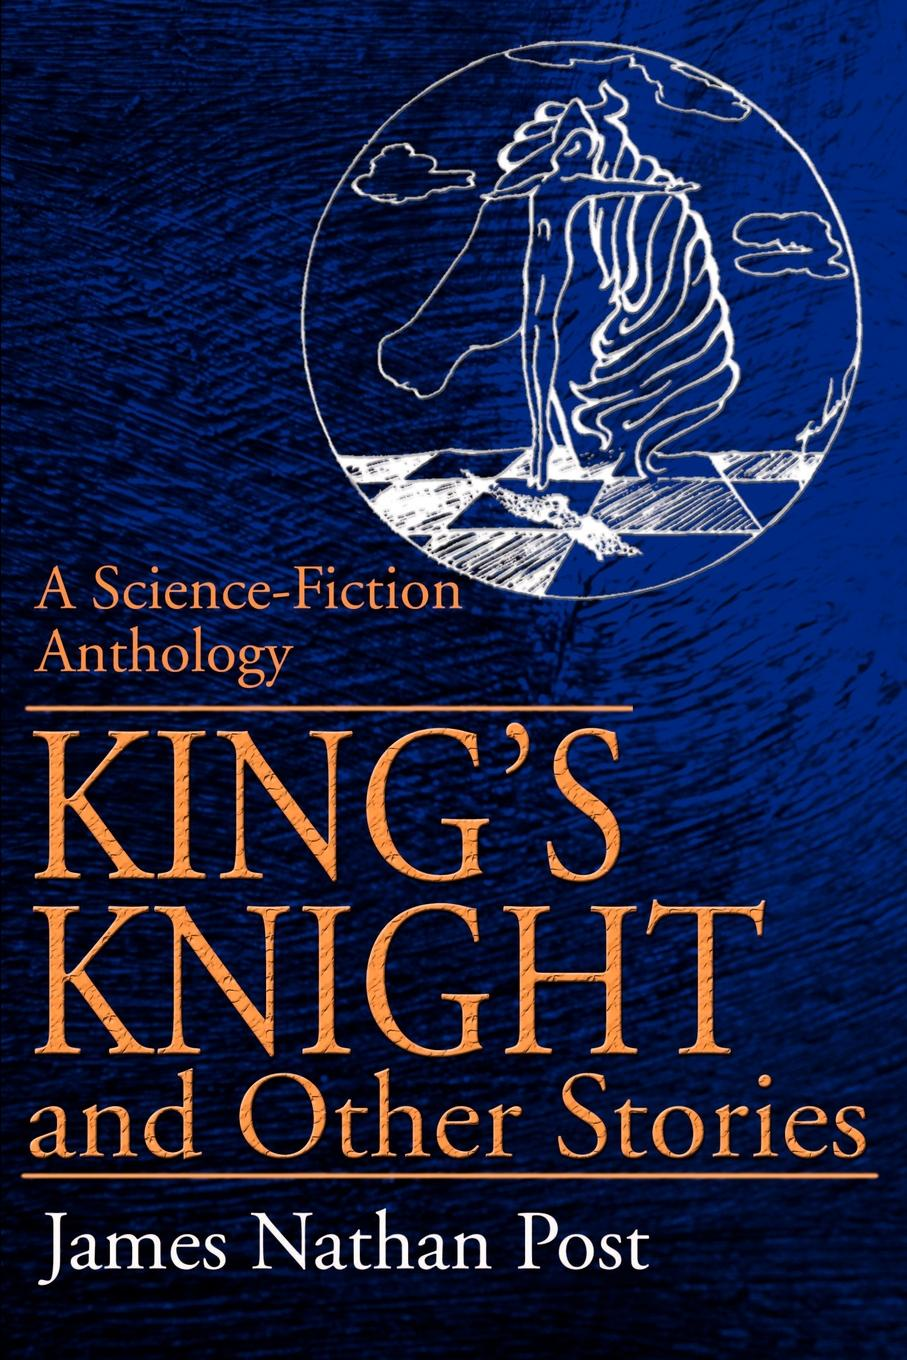 цены James Nathan Post King's Knight and Other Stories. A Science-Fiction Anthology